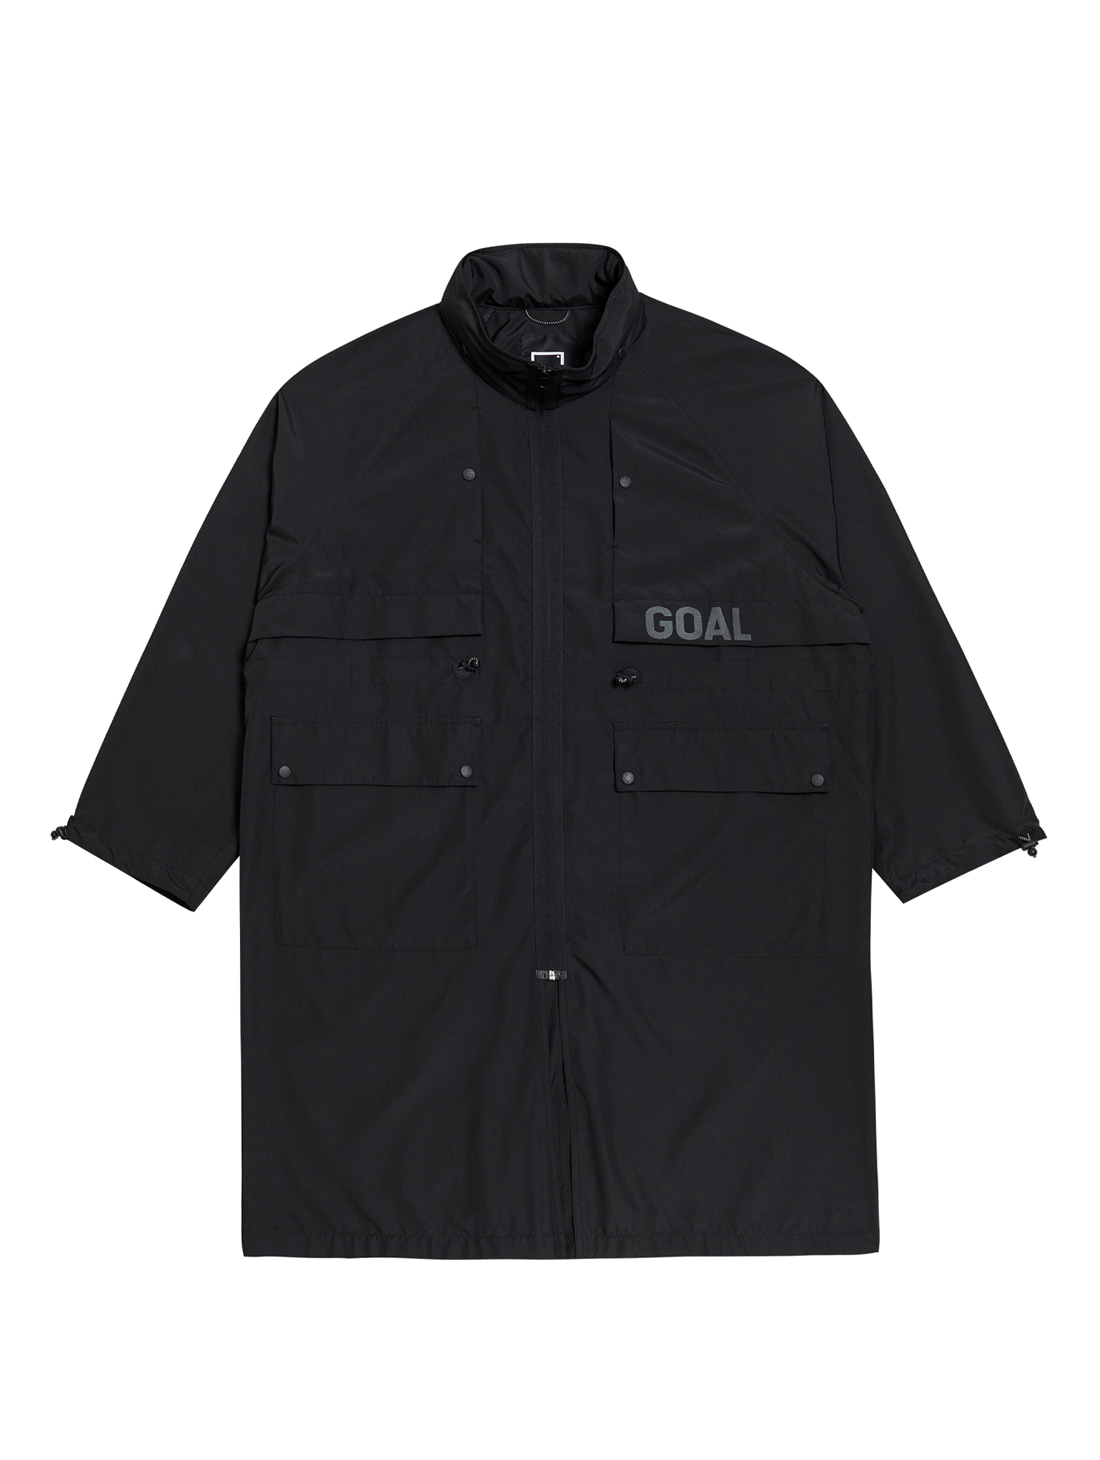 LTG LONG JACKET - BLACK